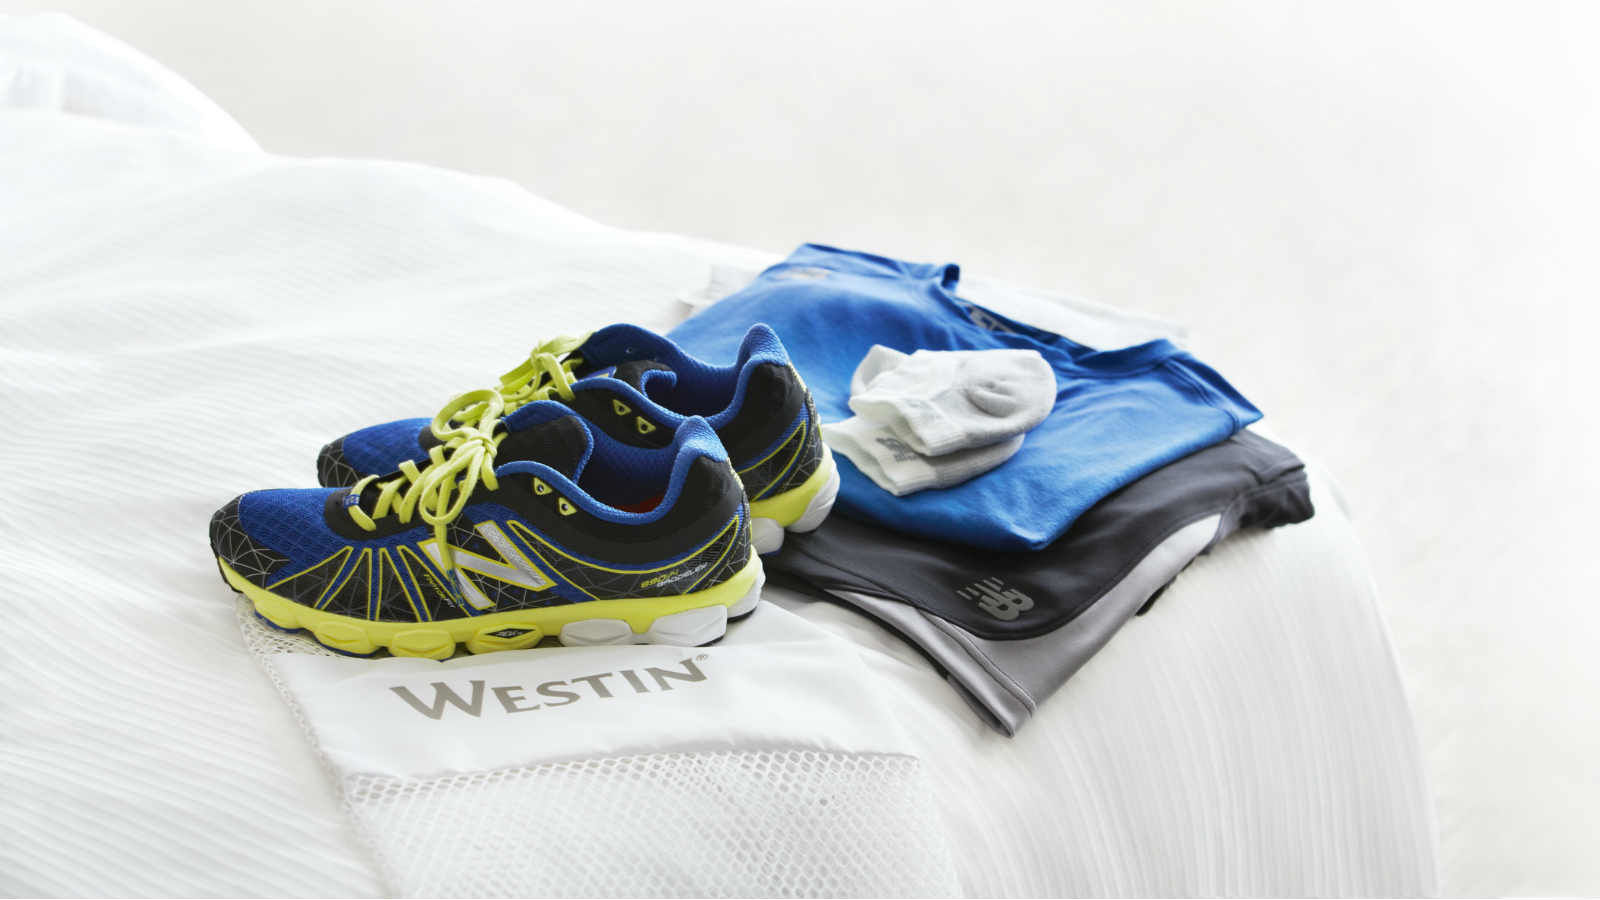 Westin WORKOUT® Guest Room